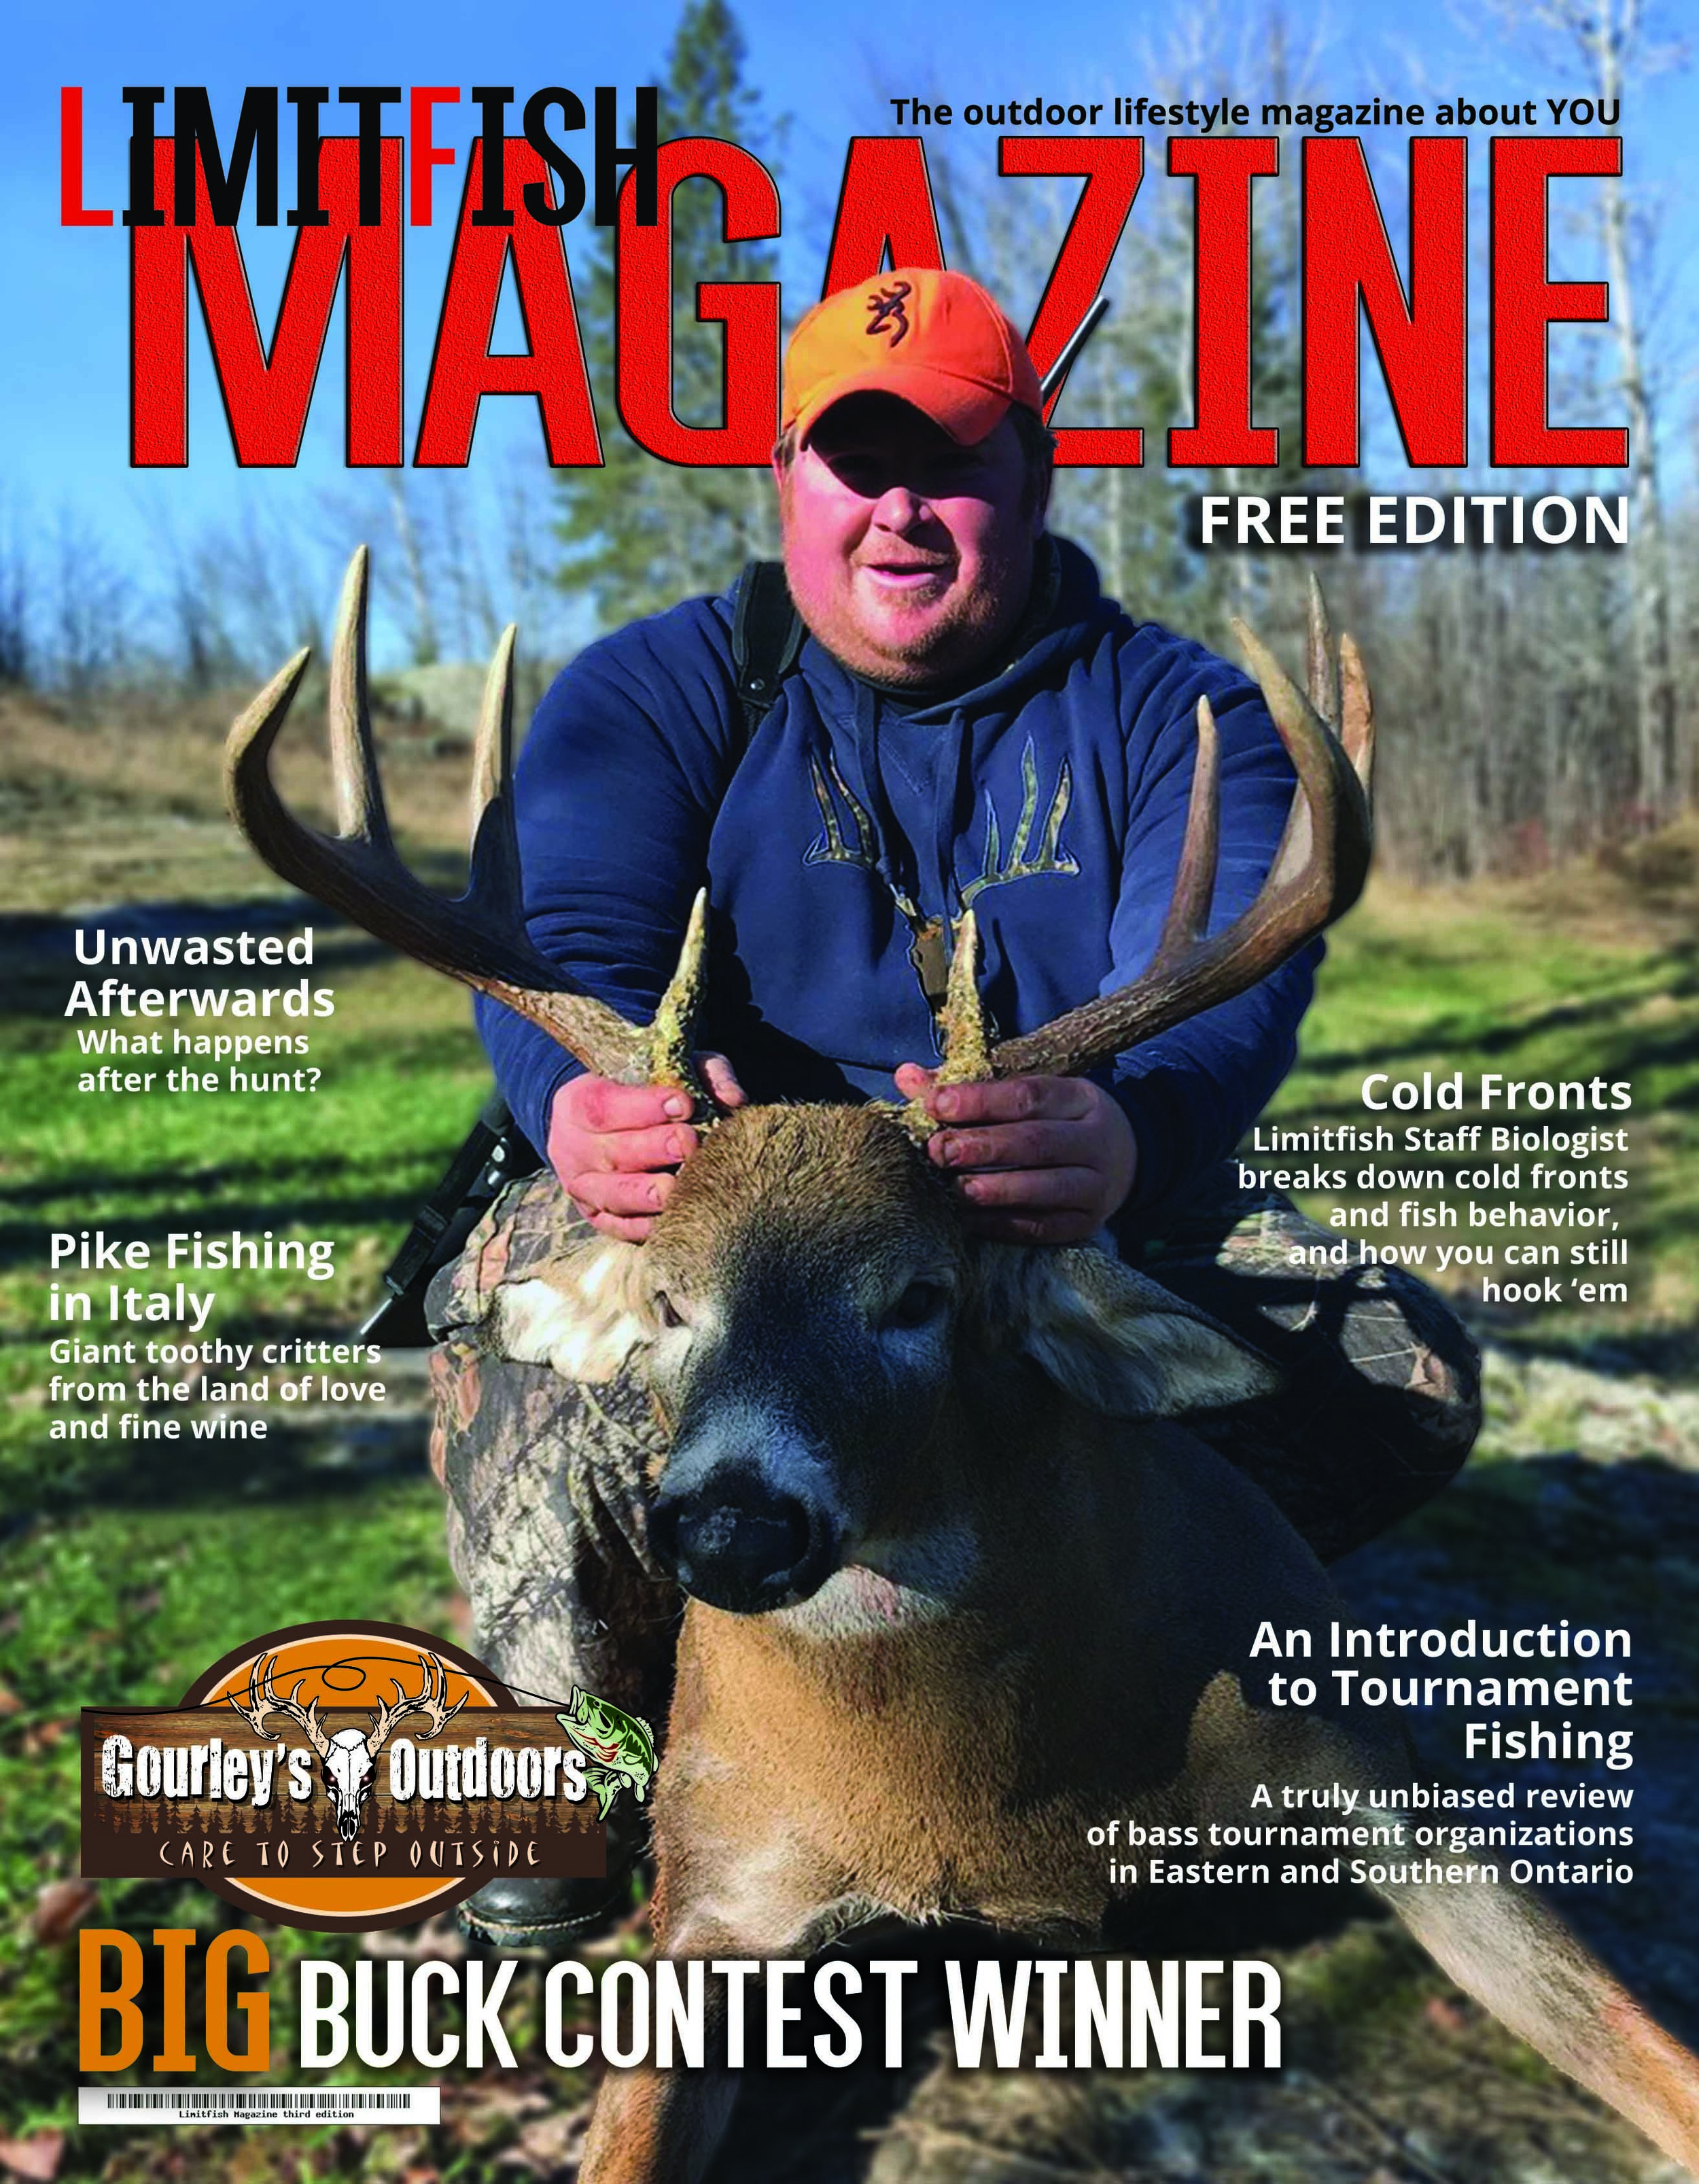 Limitfish Magazine Fall 2018 Edition - Well, it's finally here! The third edition of Limitfish Magazine! This one features the 2017 Gourley's Outdoors Big Buck Contest winner Tyler Kinghan on the cover, as well as some other amazing stories. Ever thought about fishing for Pike in Italy? Well, we've got you covered on that front. There's a receipe for some wings that you need to try, some information on Bowfins, and some tips about making your own Rod Pods. Stephanie Tuck wrote an awesome piece about her passion for fishing, and for anyone whose looking to compete in some bass tournaments, Kyle Sanson provides a summary of the major tournaments in Ontario! This 3rd edition is loaded with quality content so you'll want to get your hands on it! CLICK HERE TO VIEW THE MAGAZINE